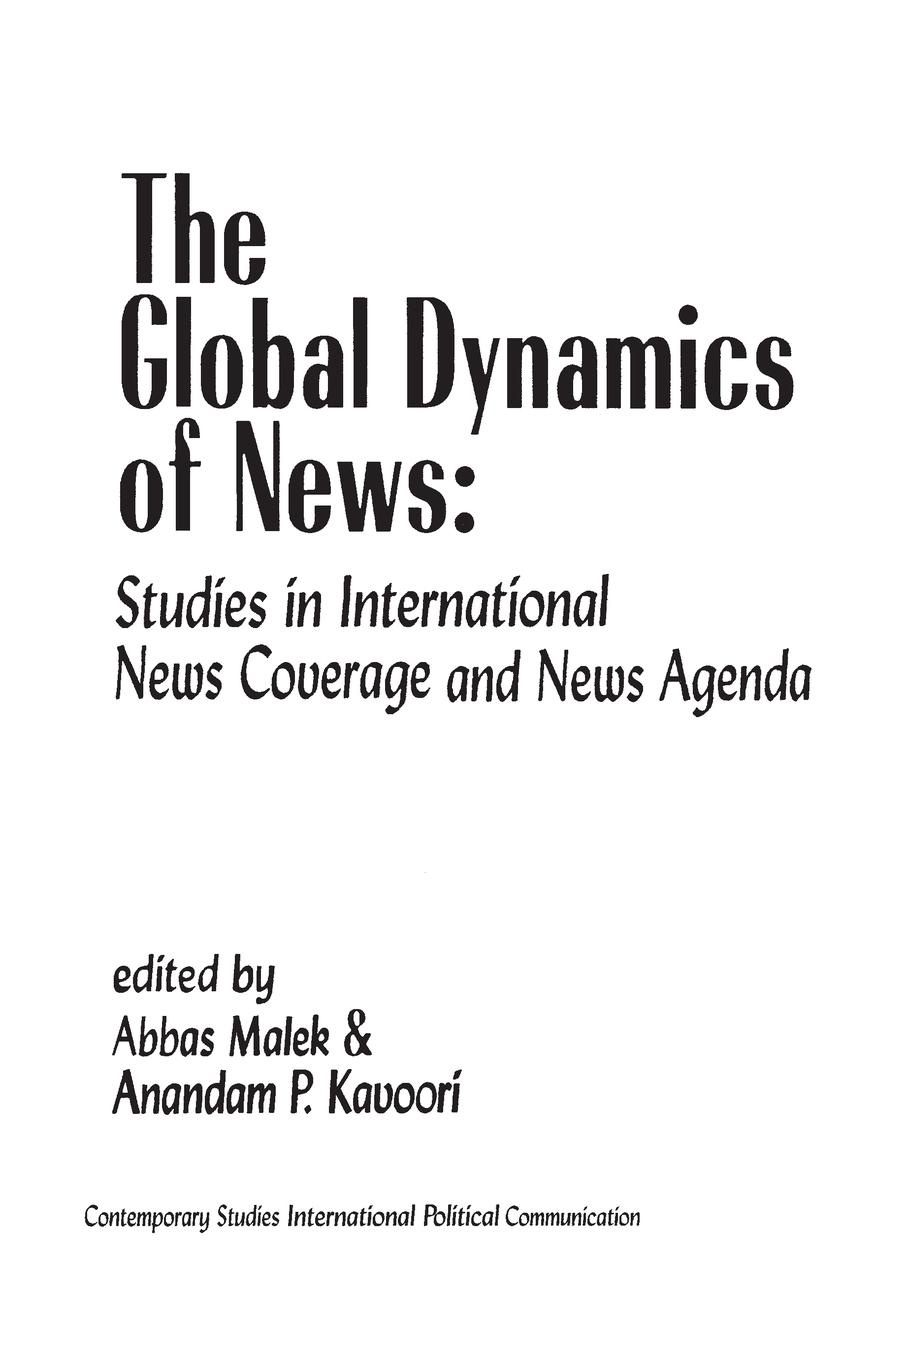 The Global Dynamics of News. Studies in International News Coverage and News Agenda news